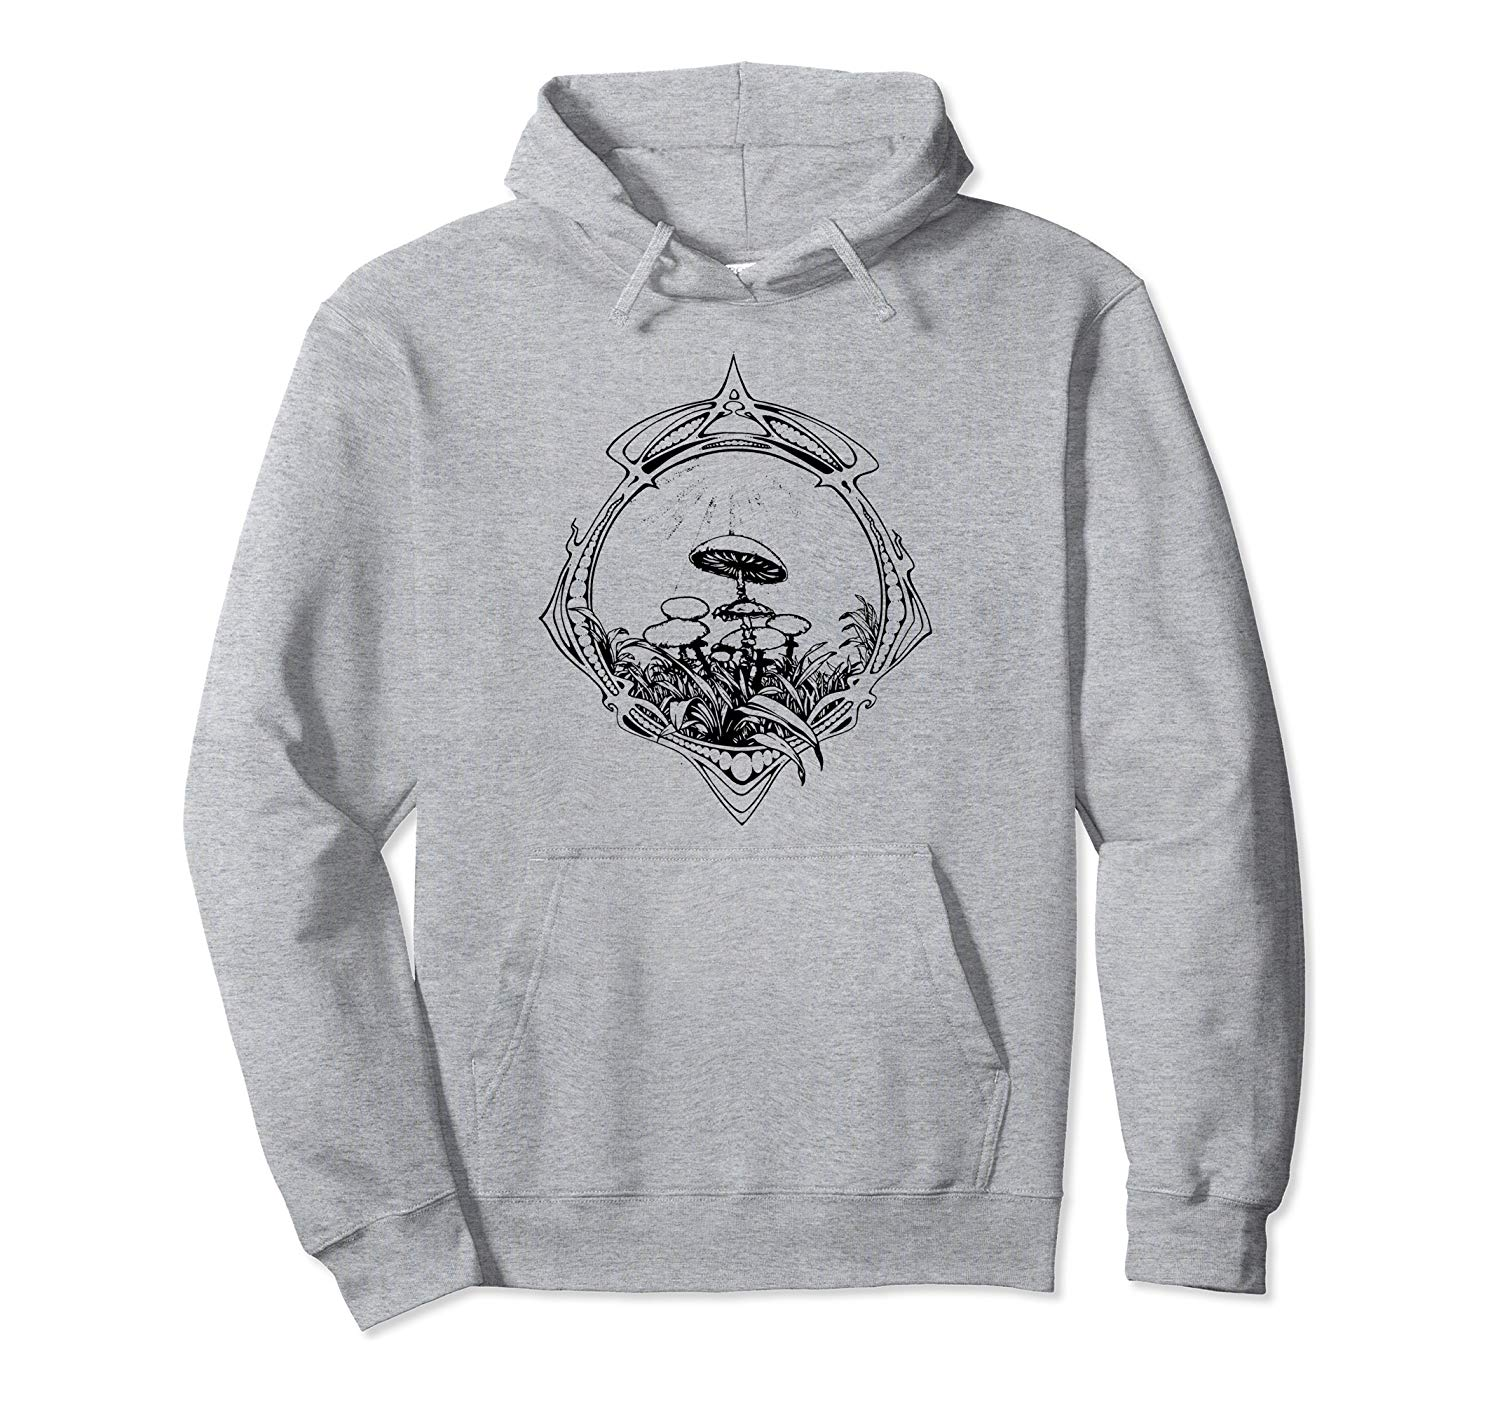 An image of a heather grey vintage magic mushrooms pullove rhoodie from Ganja Outpost.